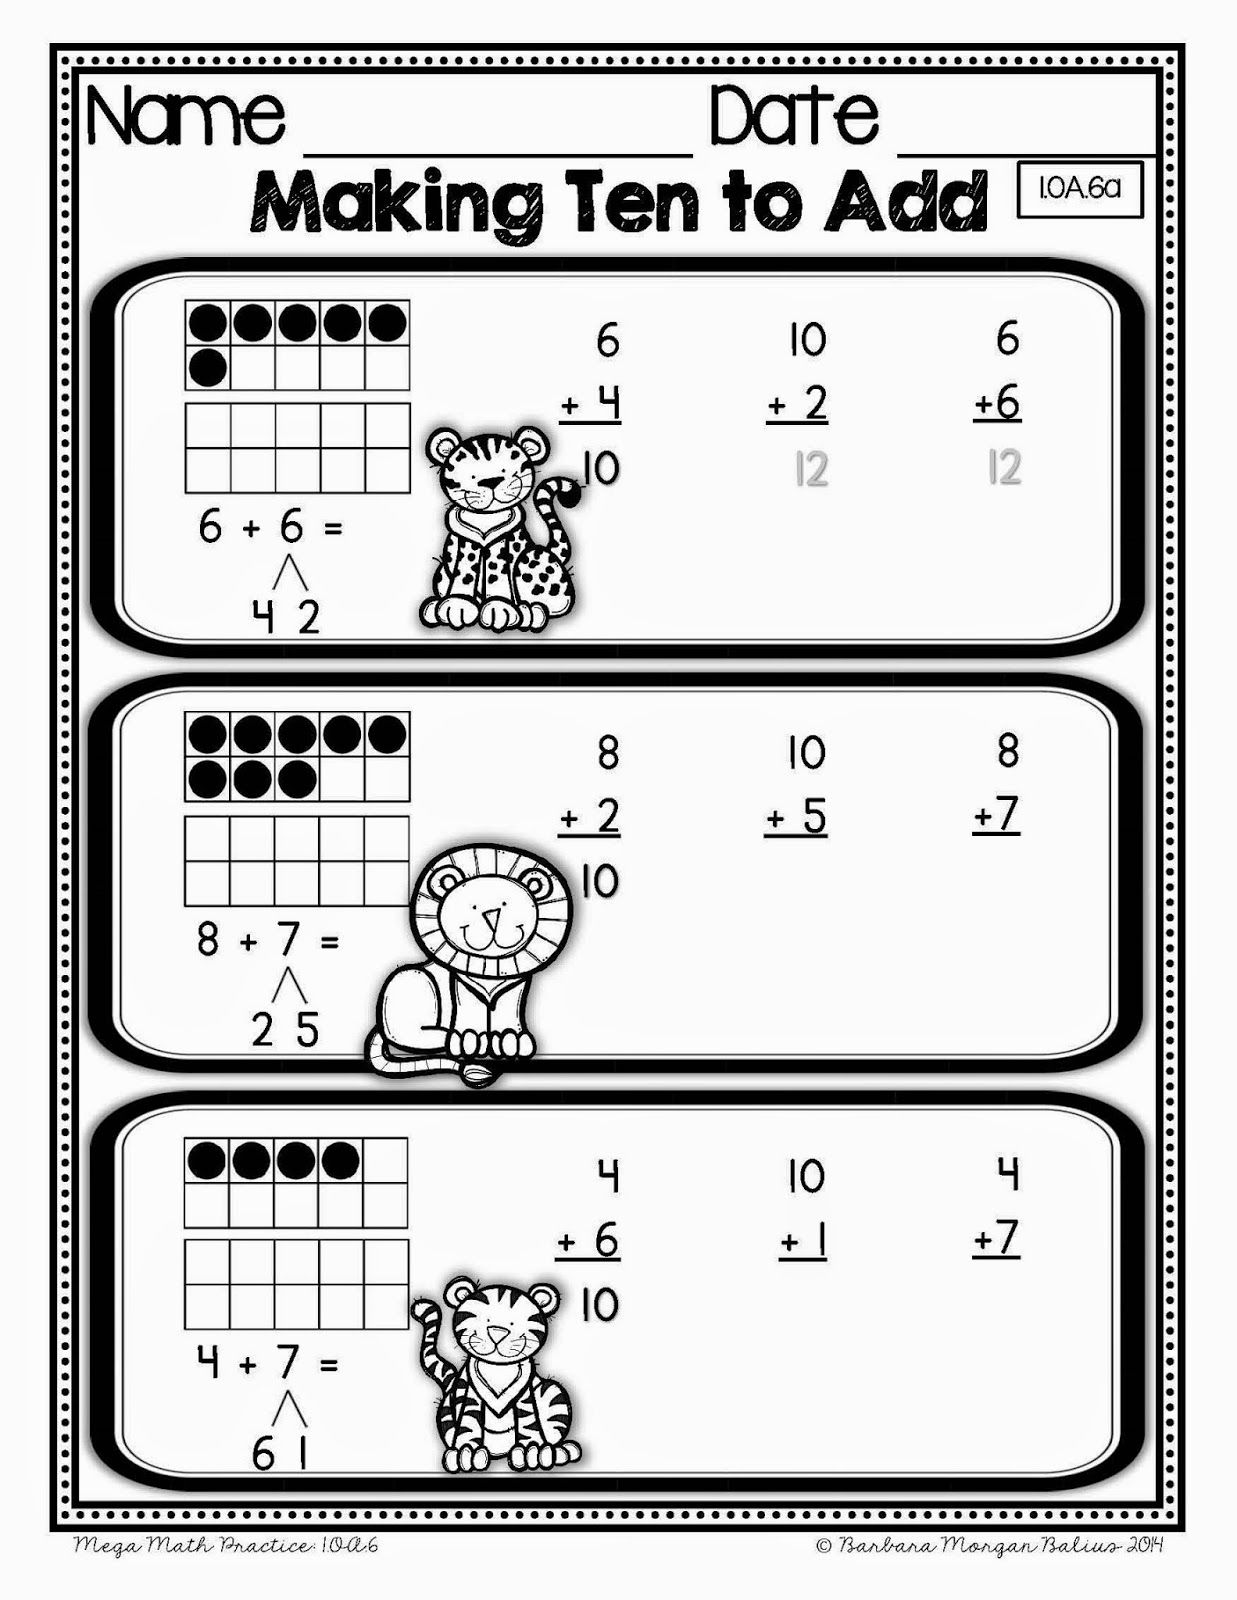 How Do You Teach The Making Ten Strategy